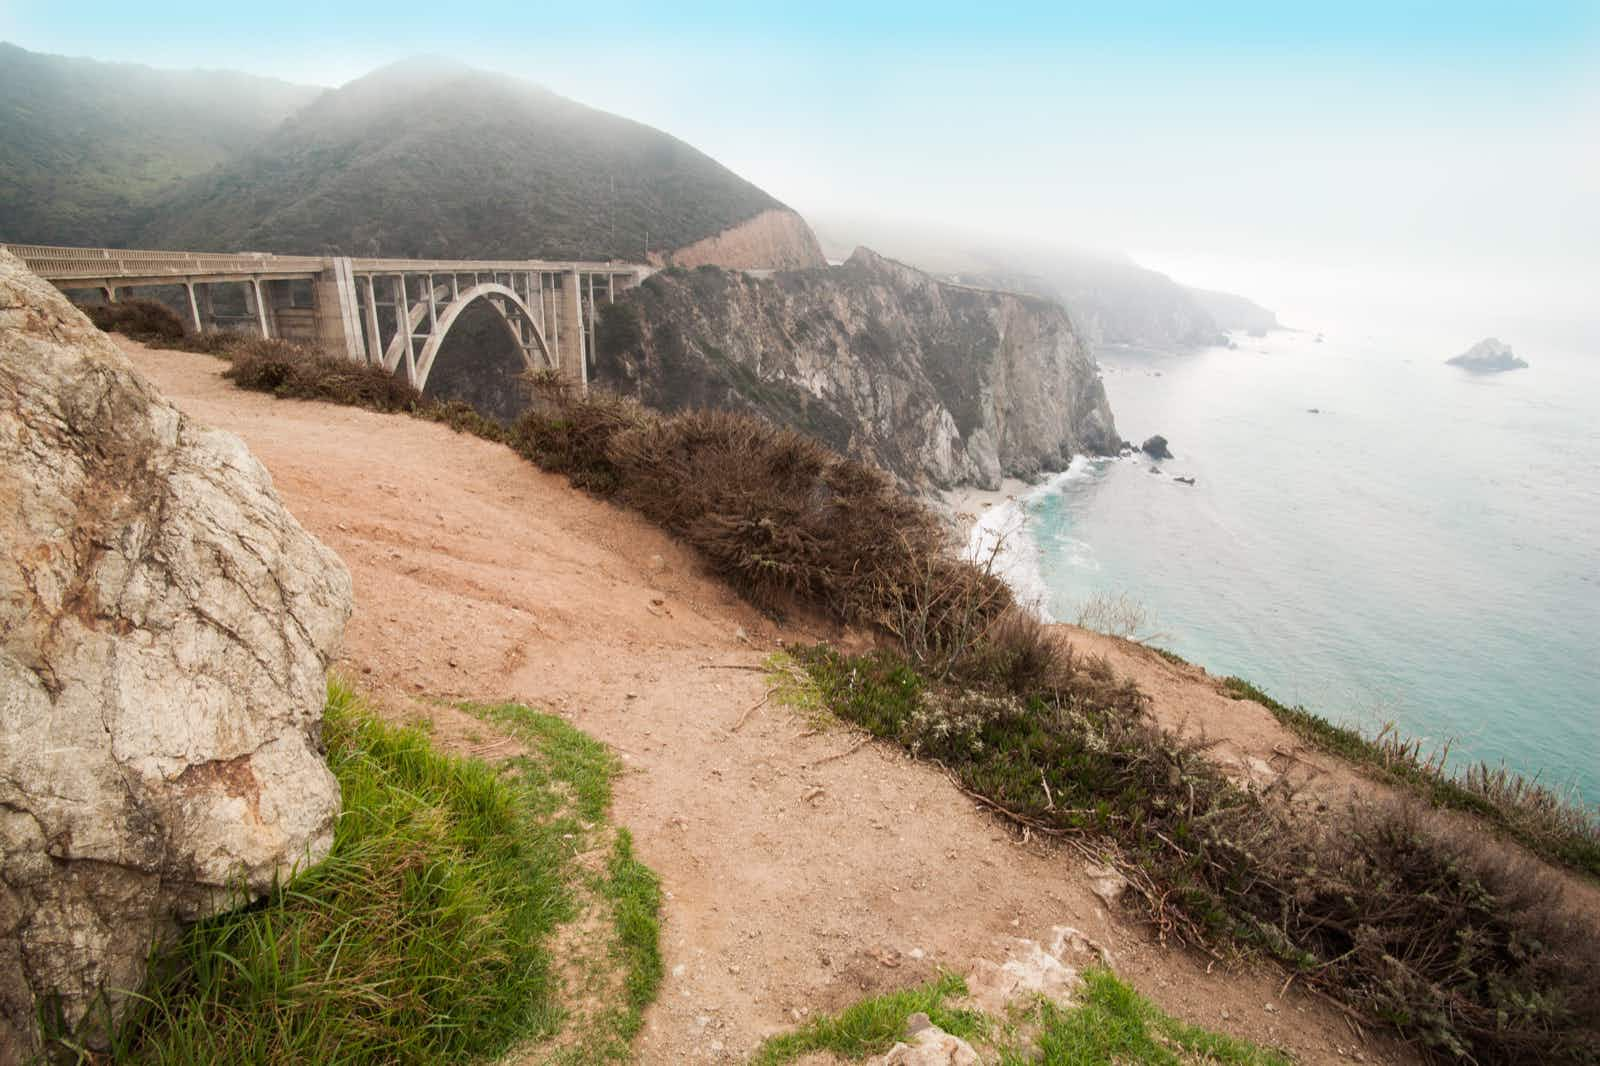 The Bixby Bridge with some fog and the ocean is a filming location in Big Little Lies